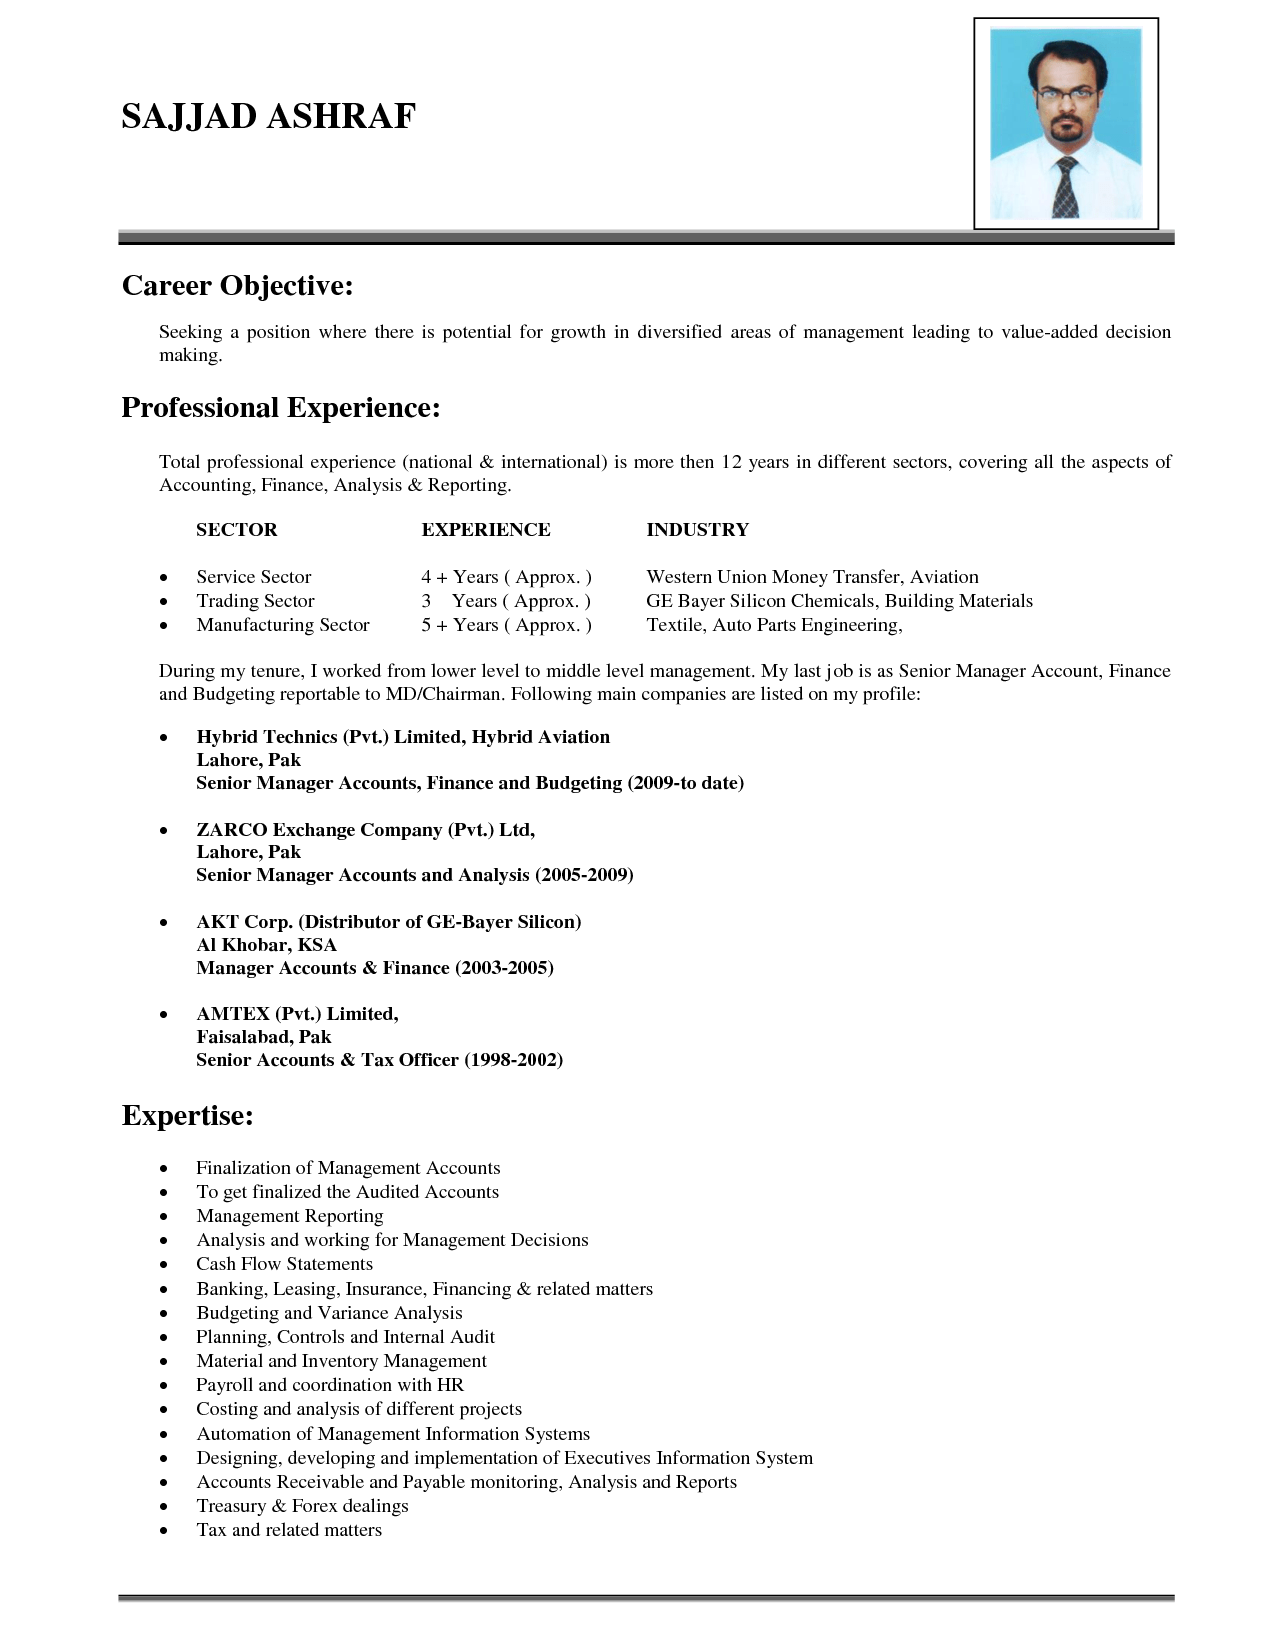 Good Objective Statement For Resume Examples 12 General Career Objective Resume Samplebusinessresume